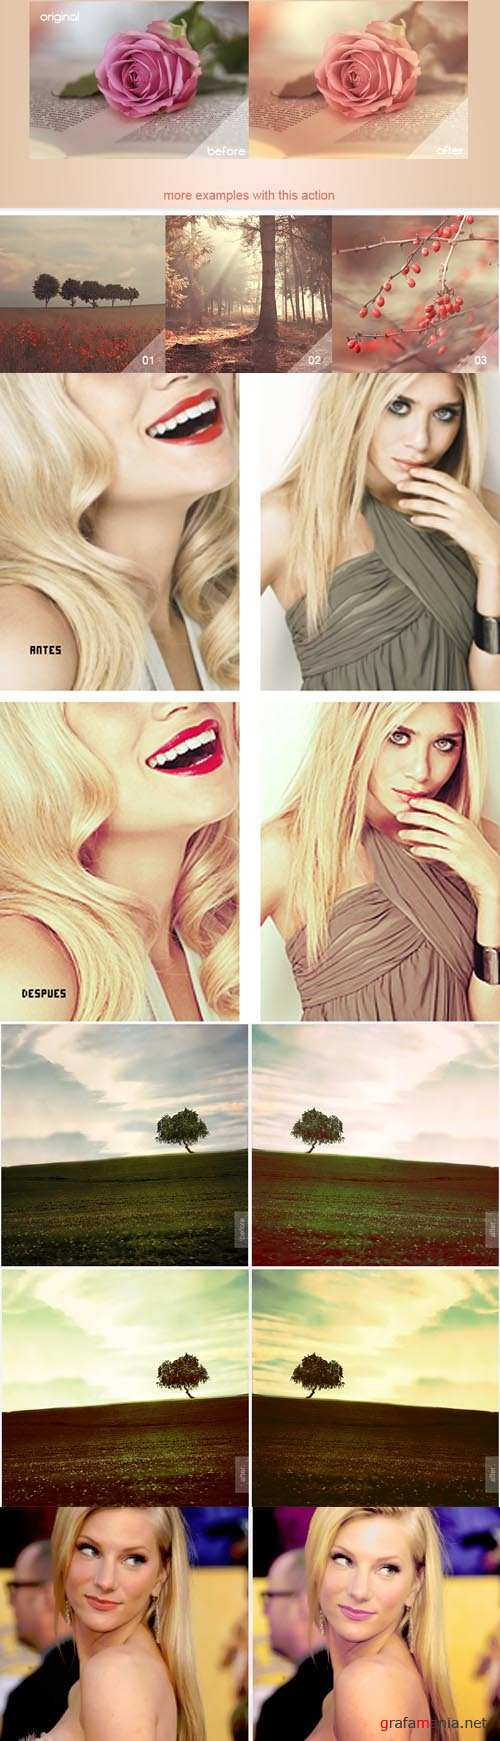 Cool Photoshop Action 2012 pack 469